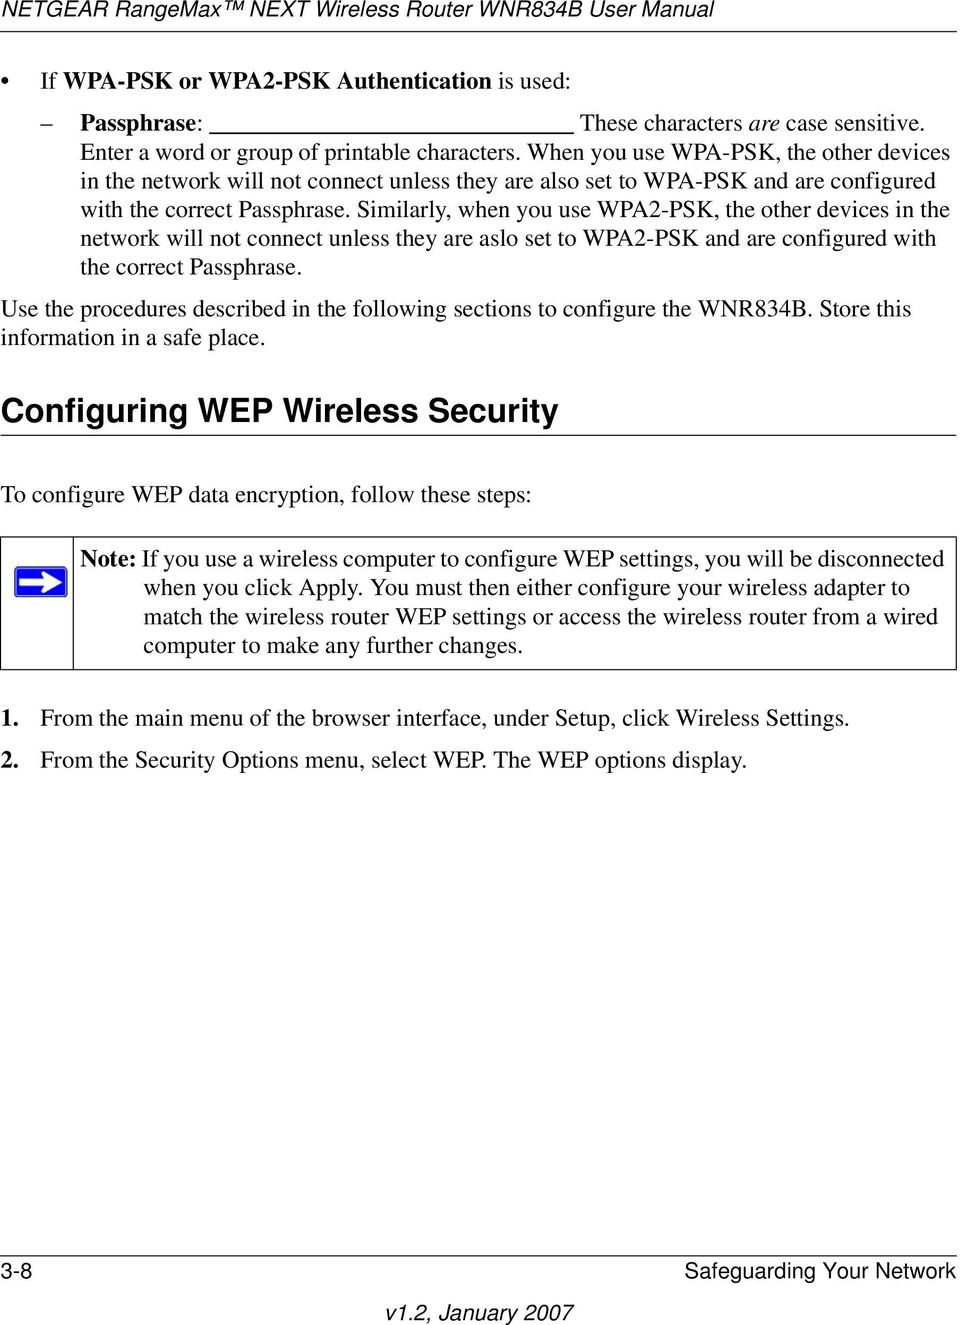 Similarly, when you use WPA2-PSK, the other devices in the network will not connect unless they are aslo set to WPA2-PSK and are configured with the correct Passphrase.